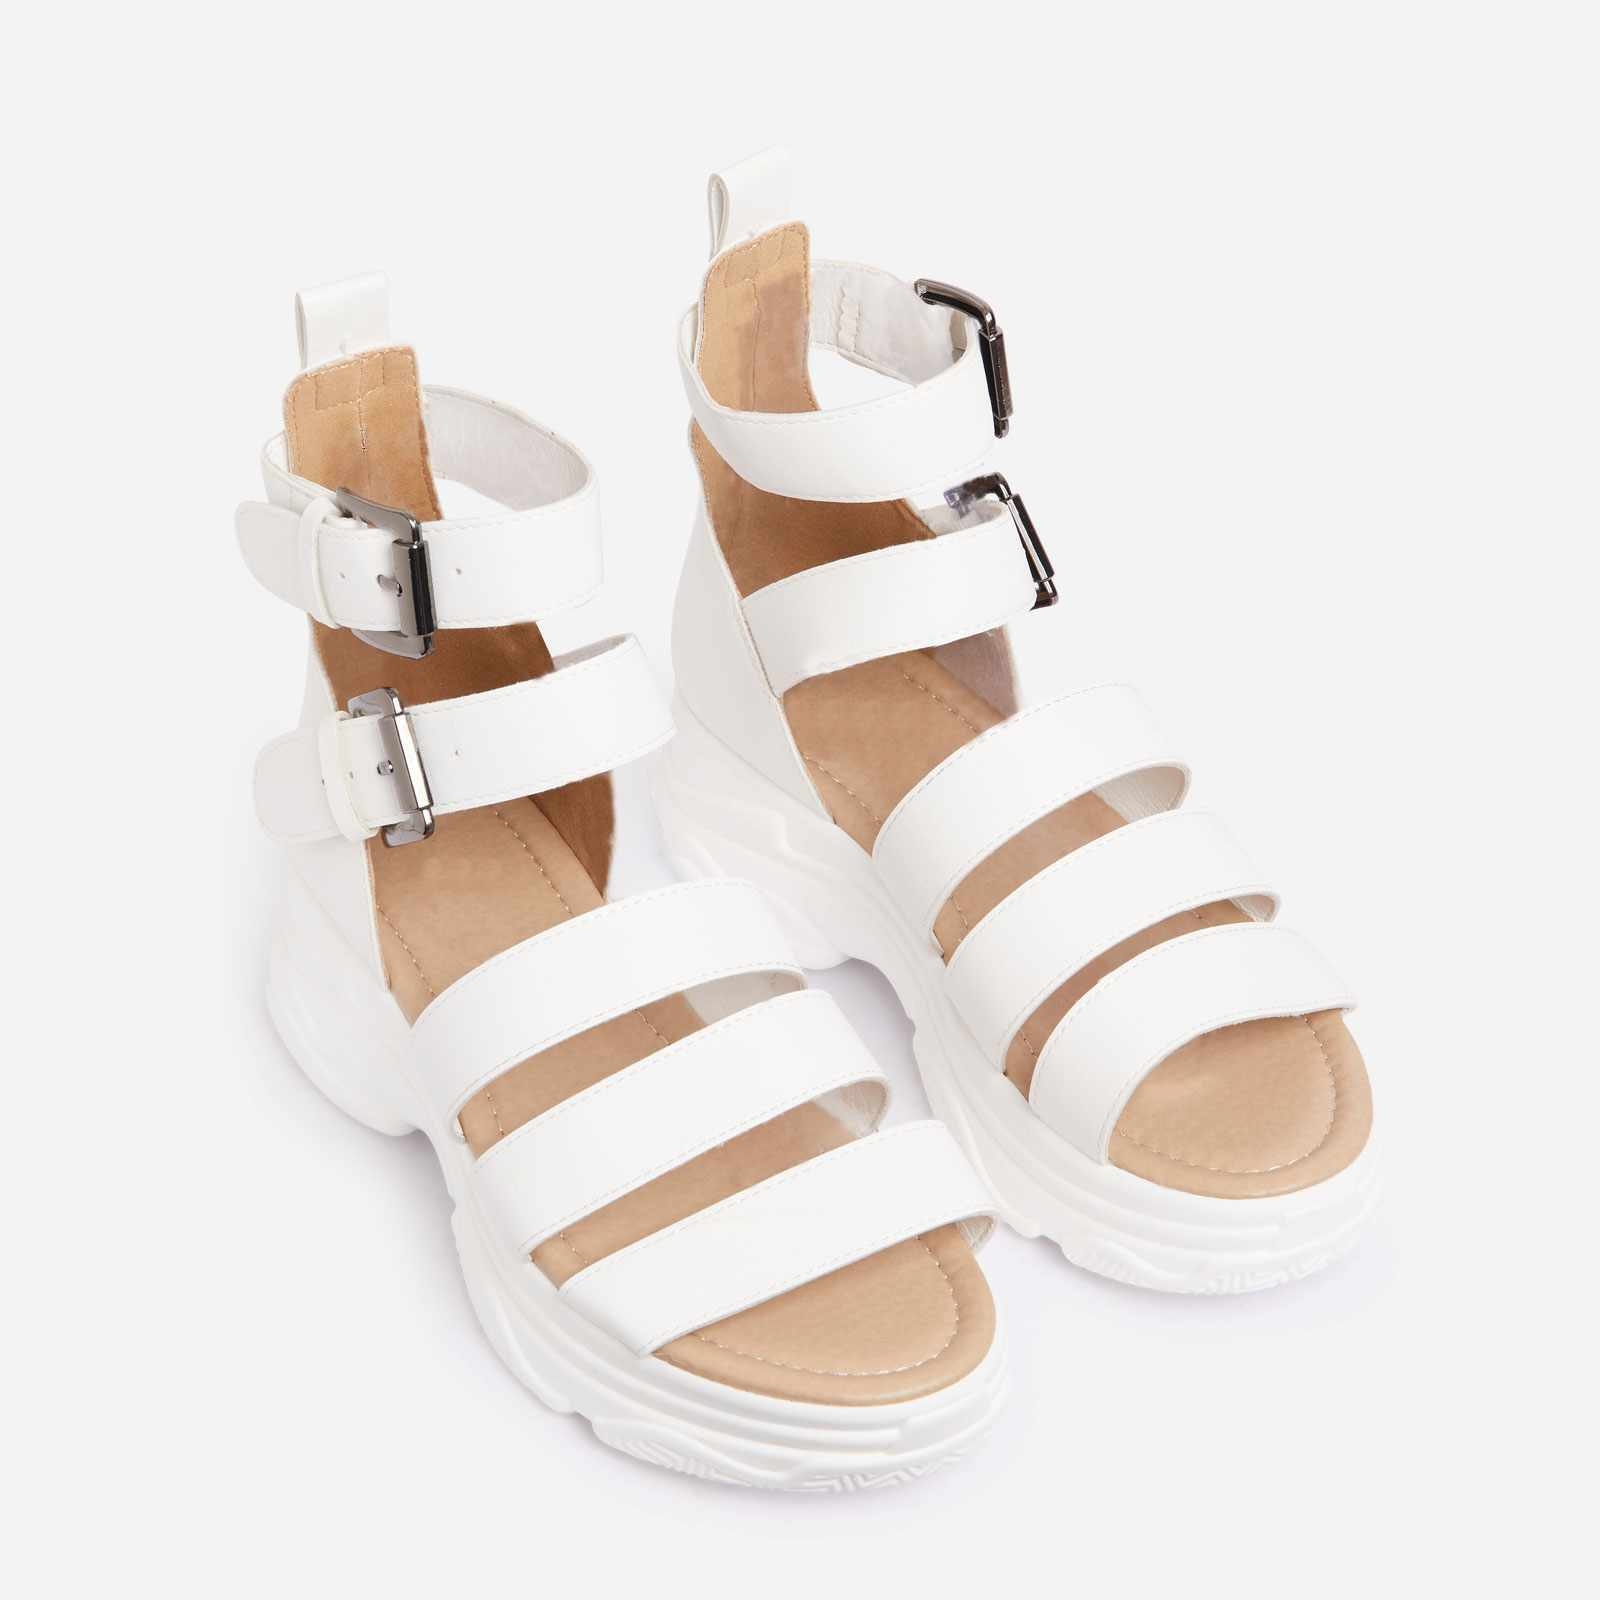 Cristiano Chunky Sole Flat Gladiator Sandal In White Faux Leather